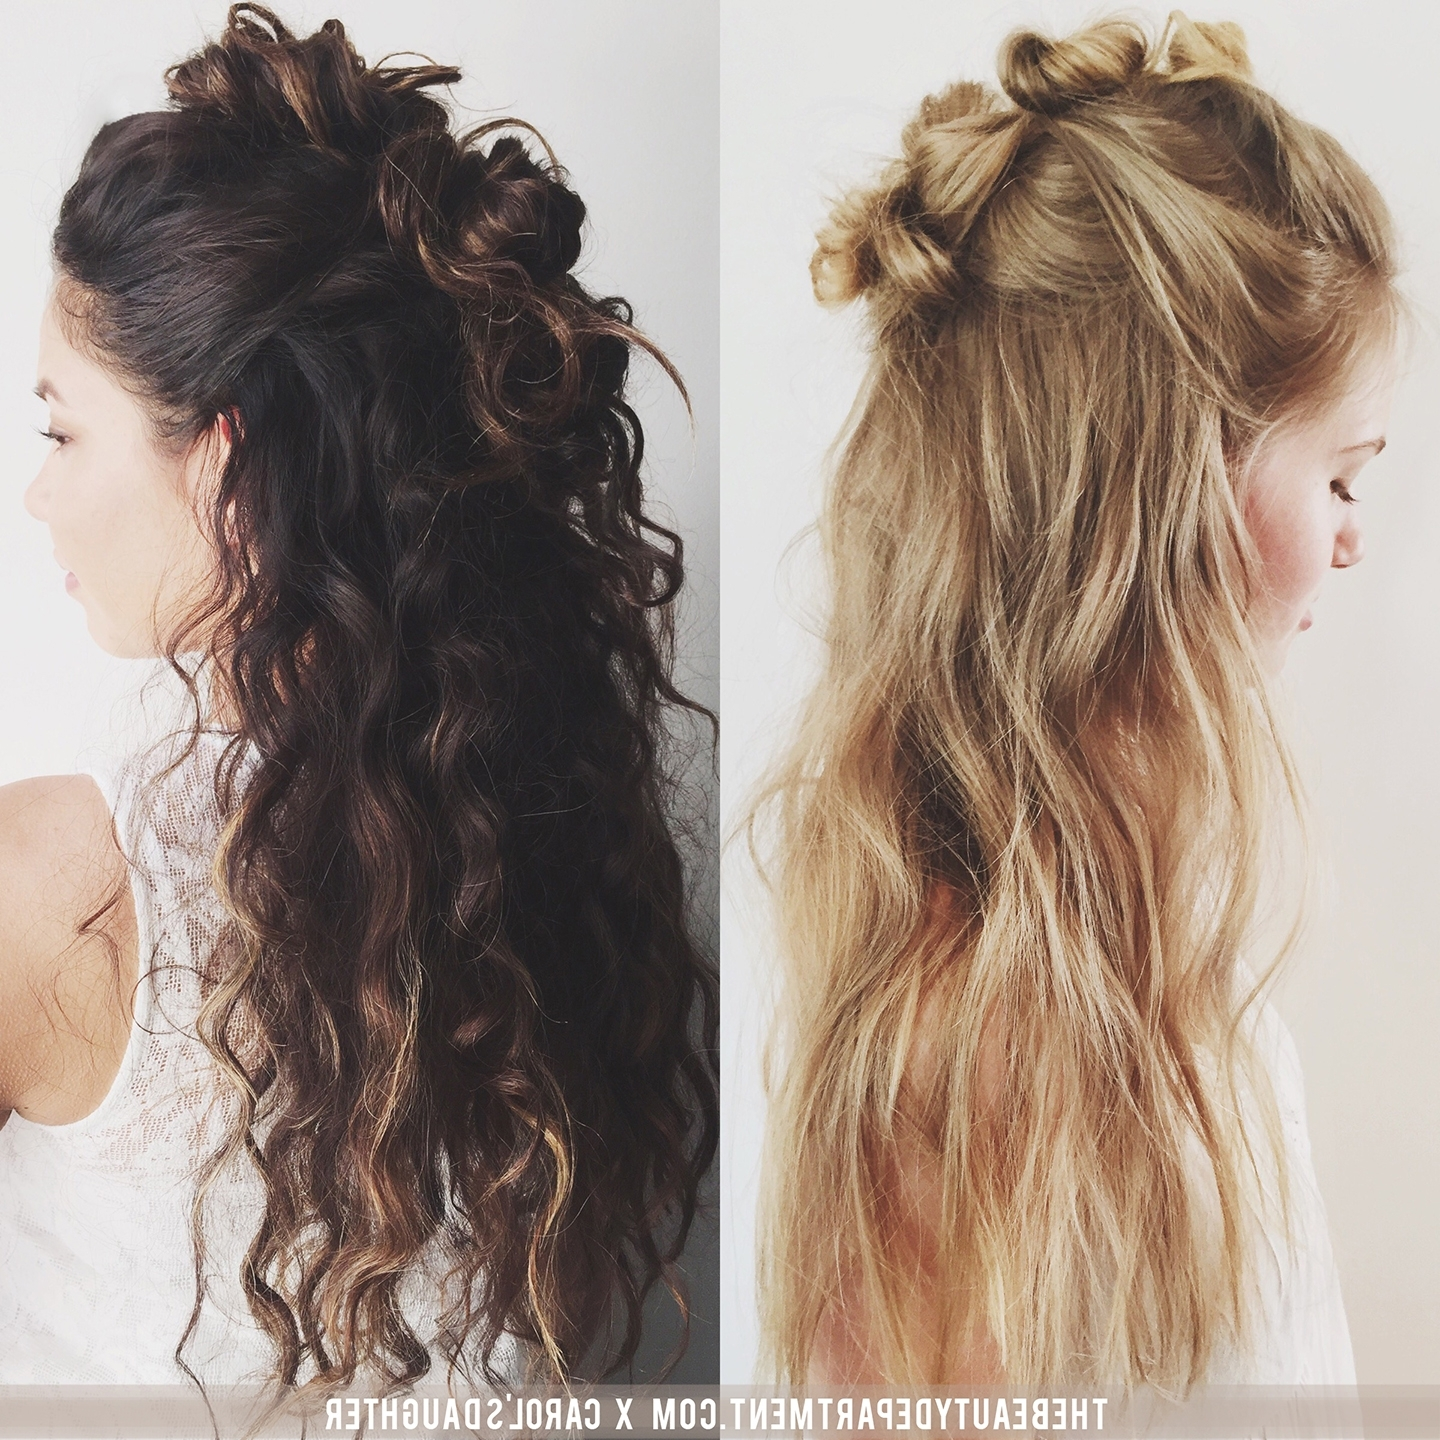 Widely Used Messy Half Ponytail Hairstyles For The Beauty Department: Your Daily Dose Of Pretty (View 19 of 20)